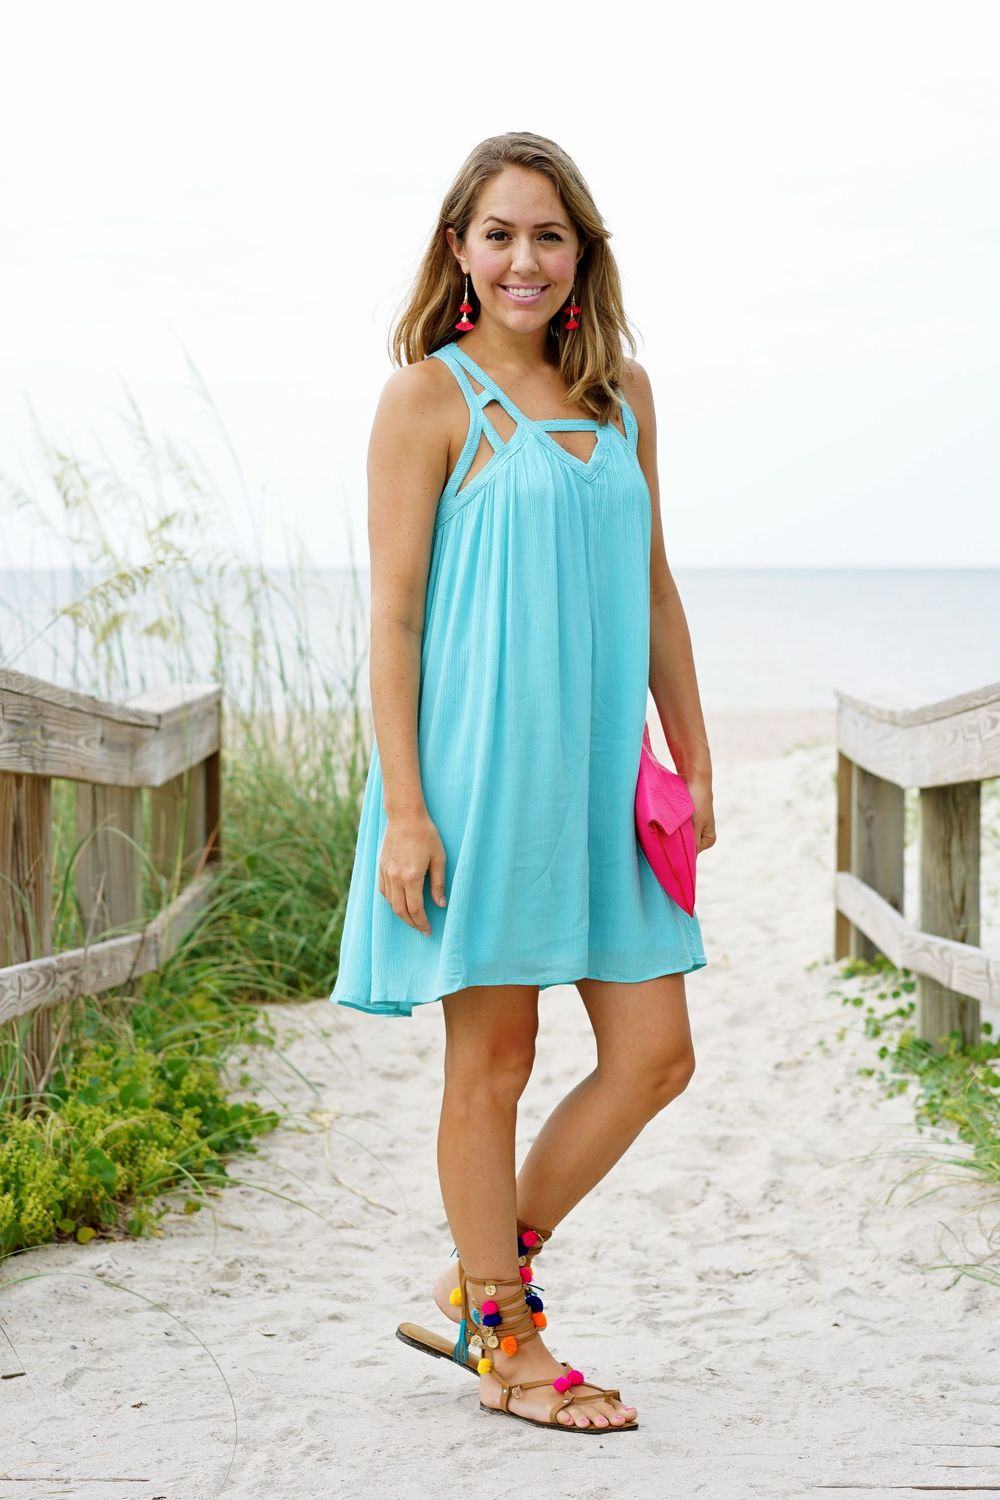 Turquoise crisscross dress, hot pink clutch, pom pom sandals